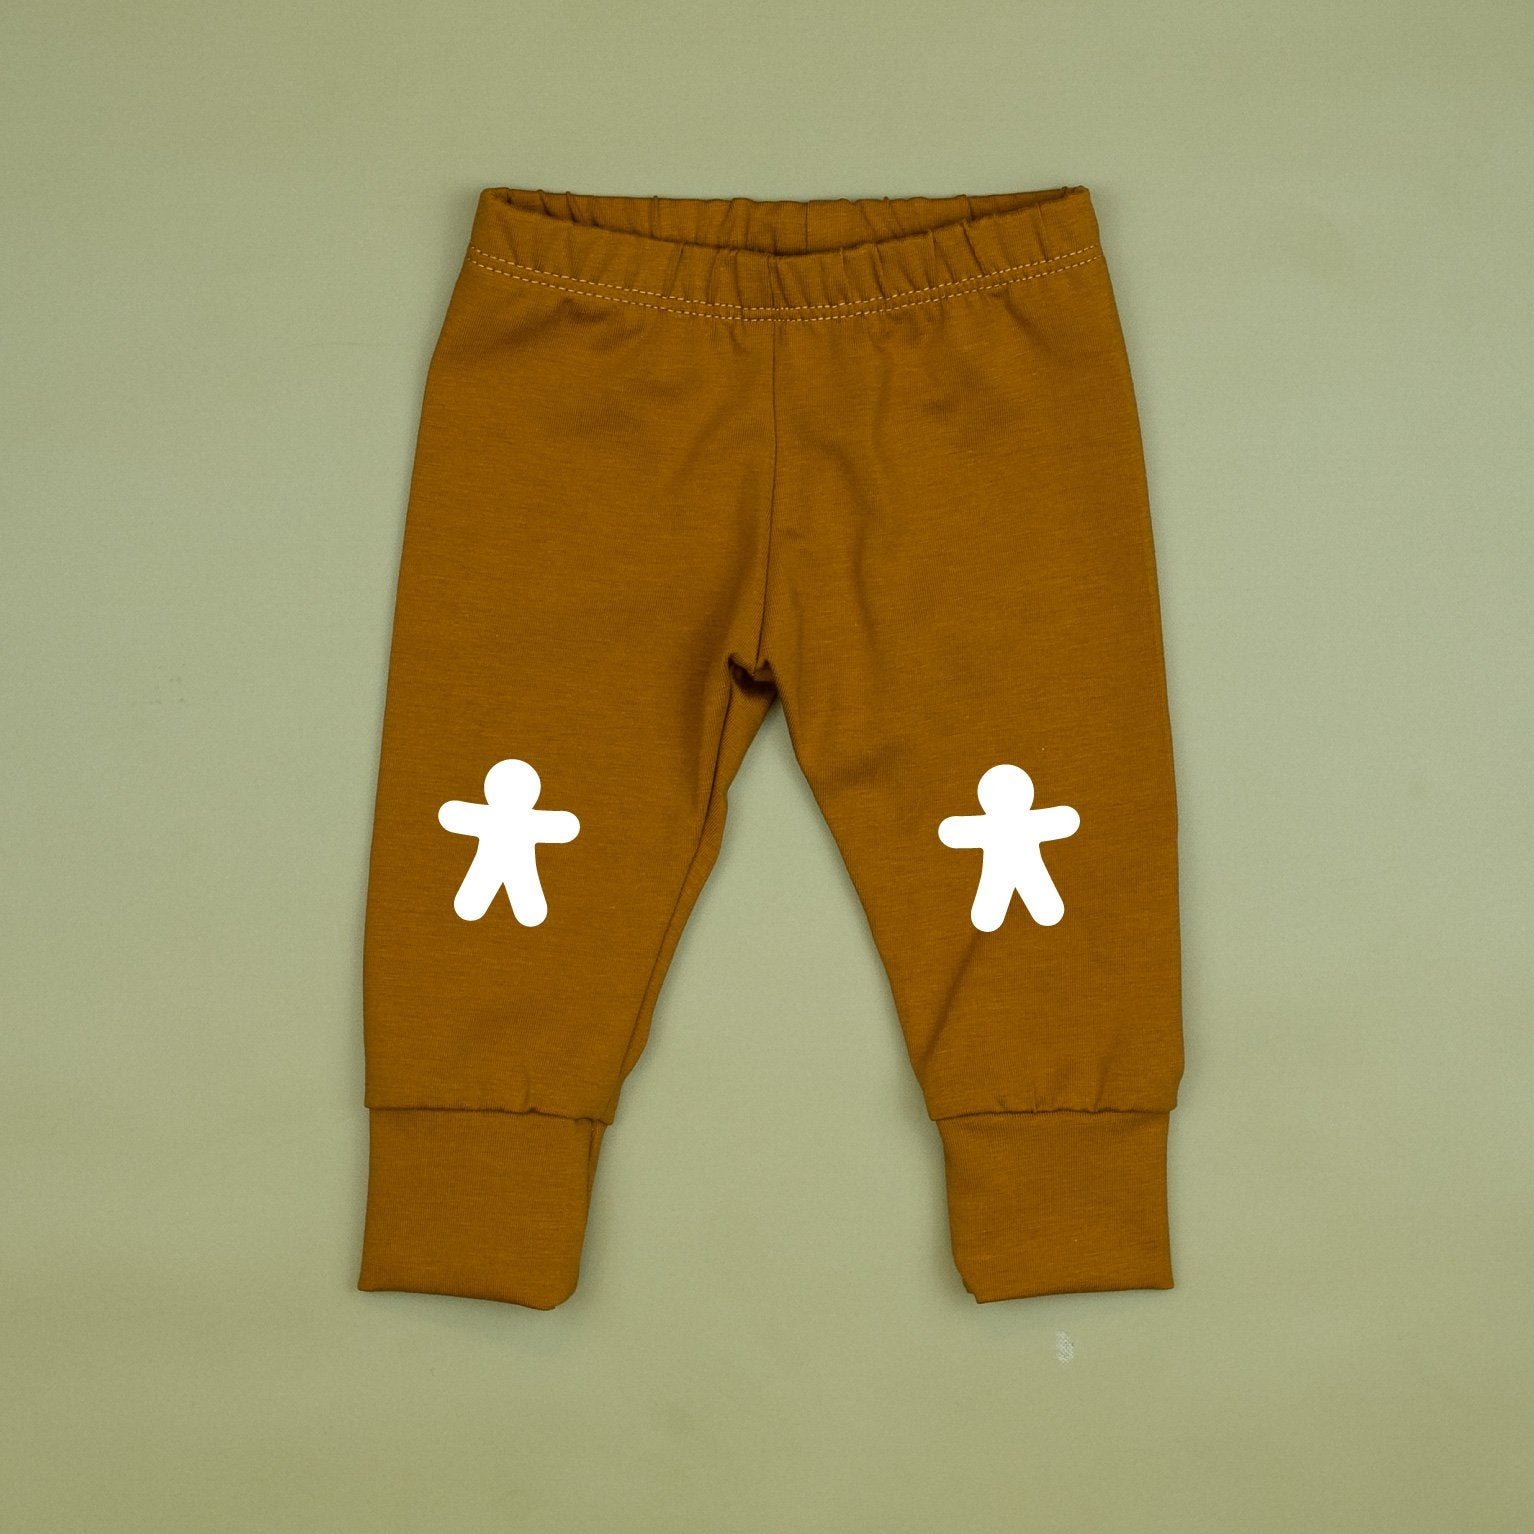 Cuddle Sleep Dream Joggers SOLID Gingerbread Slim Joggers w/ Knee Patches